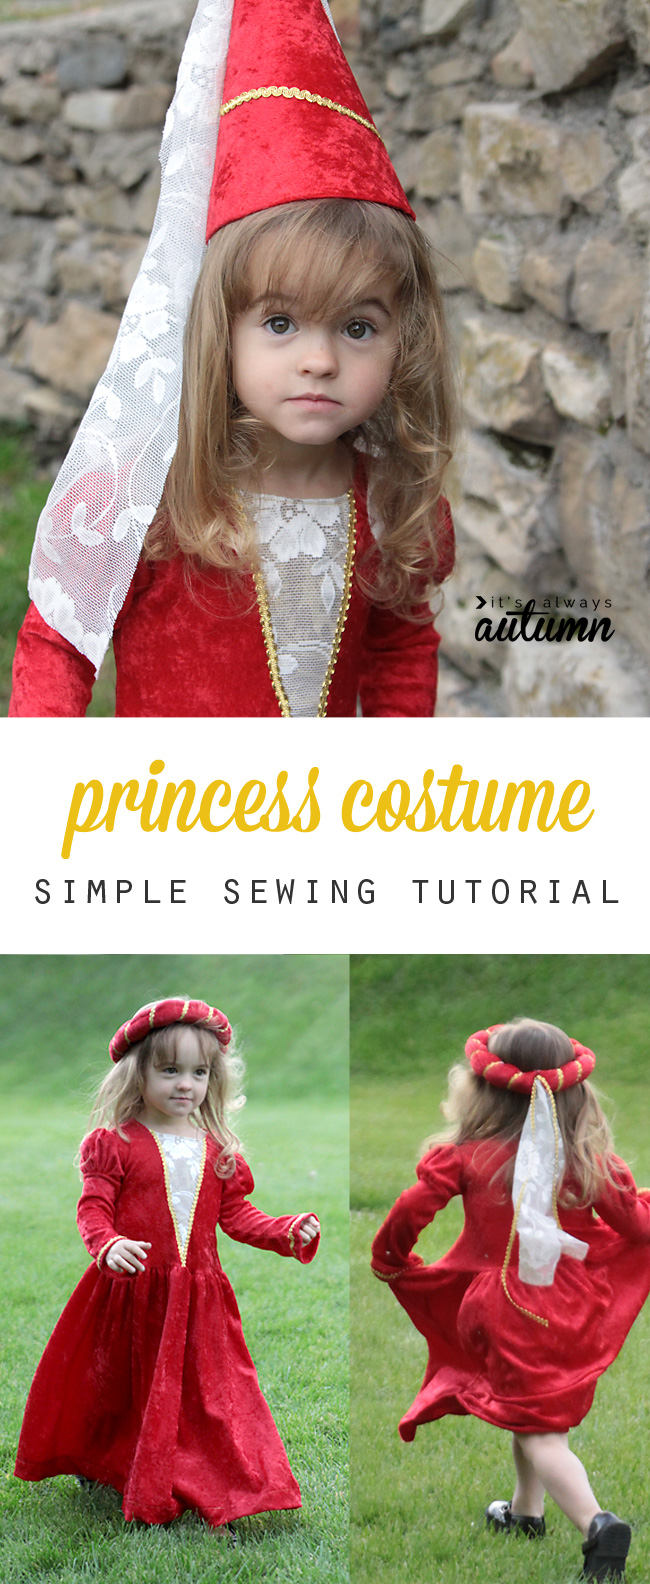 This adorable princess dress is actually really easy to make! Sew one up for a Halloween costume or just for dress up!